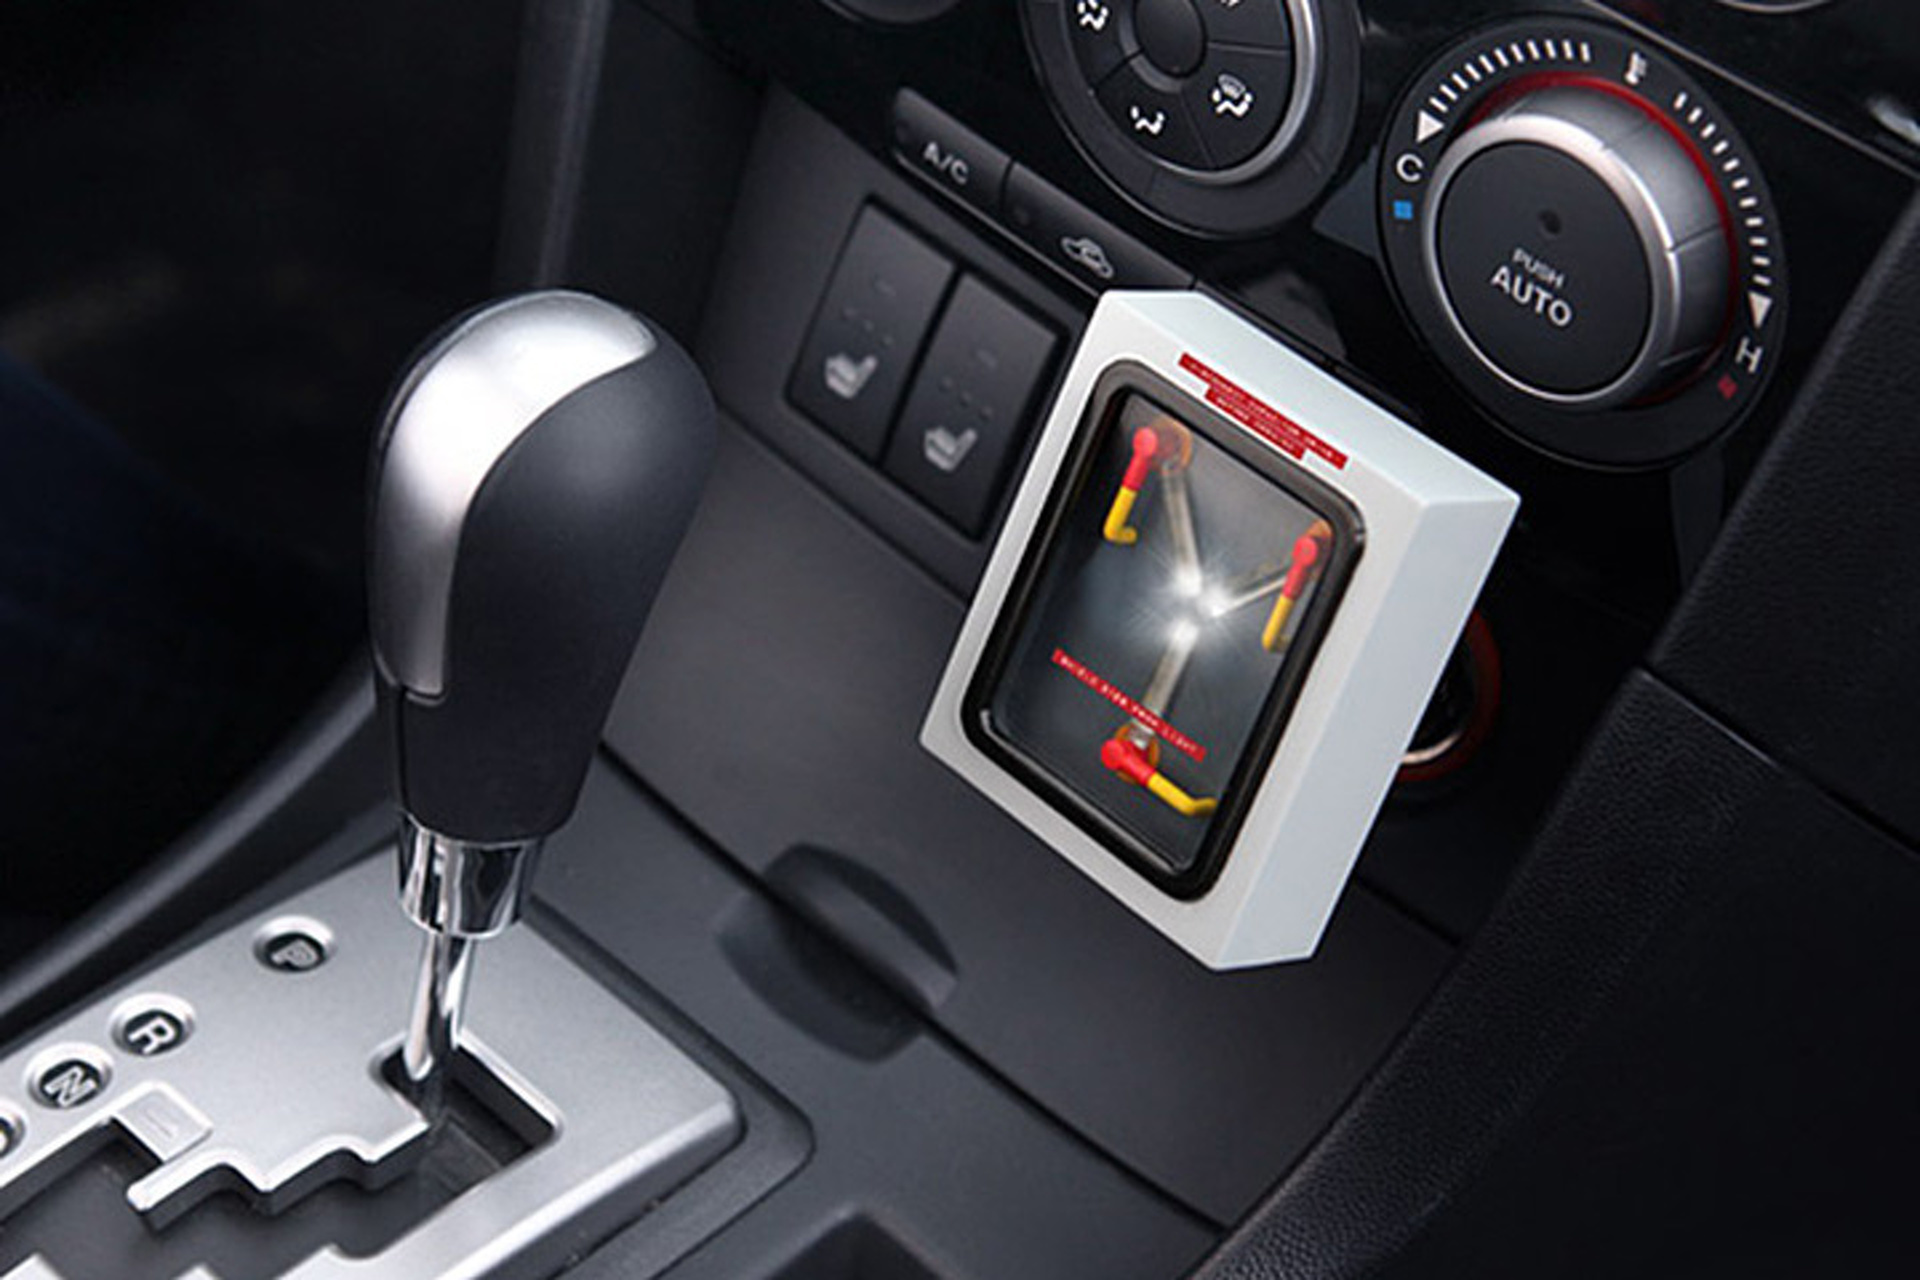 8 Great Car Gift Ideas for the Holidays 2015